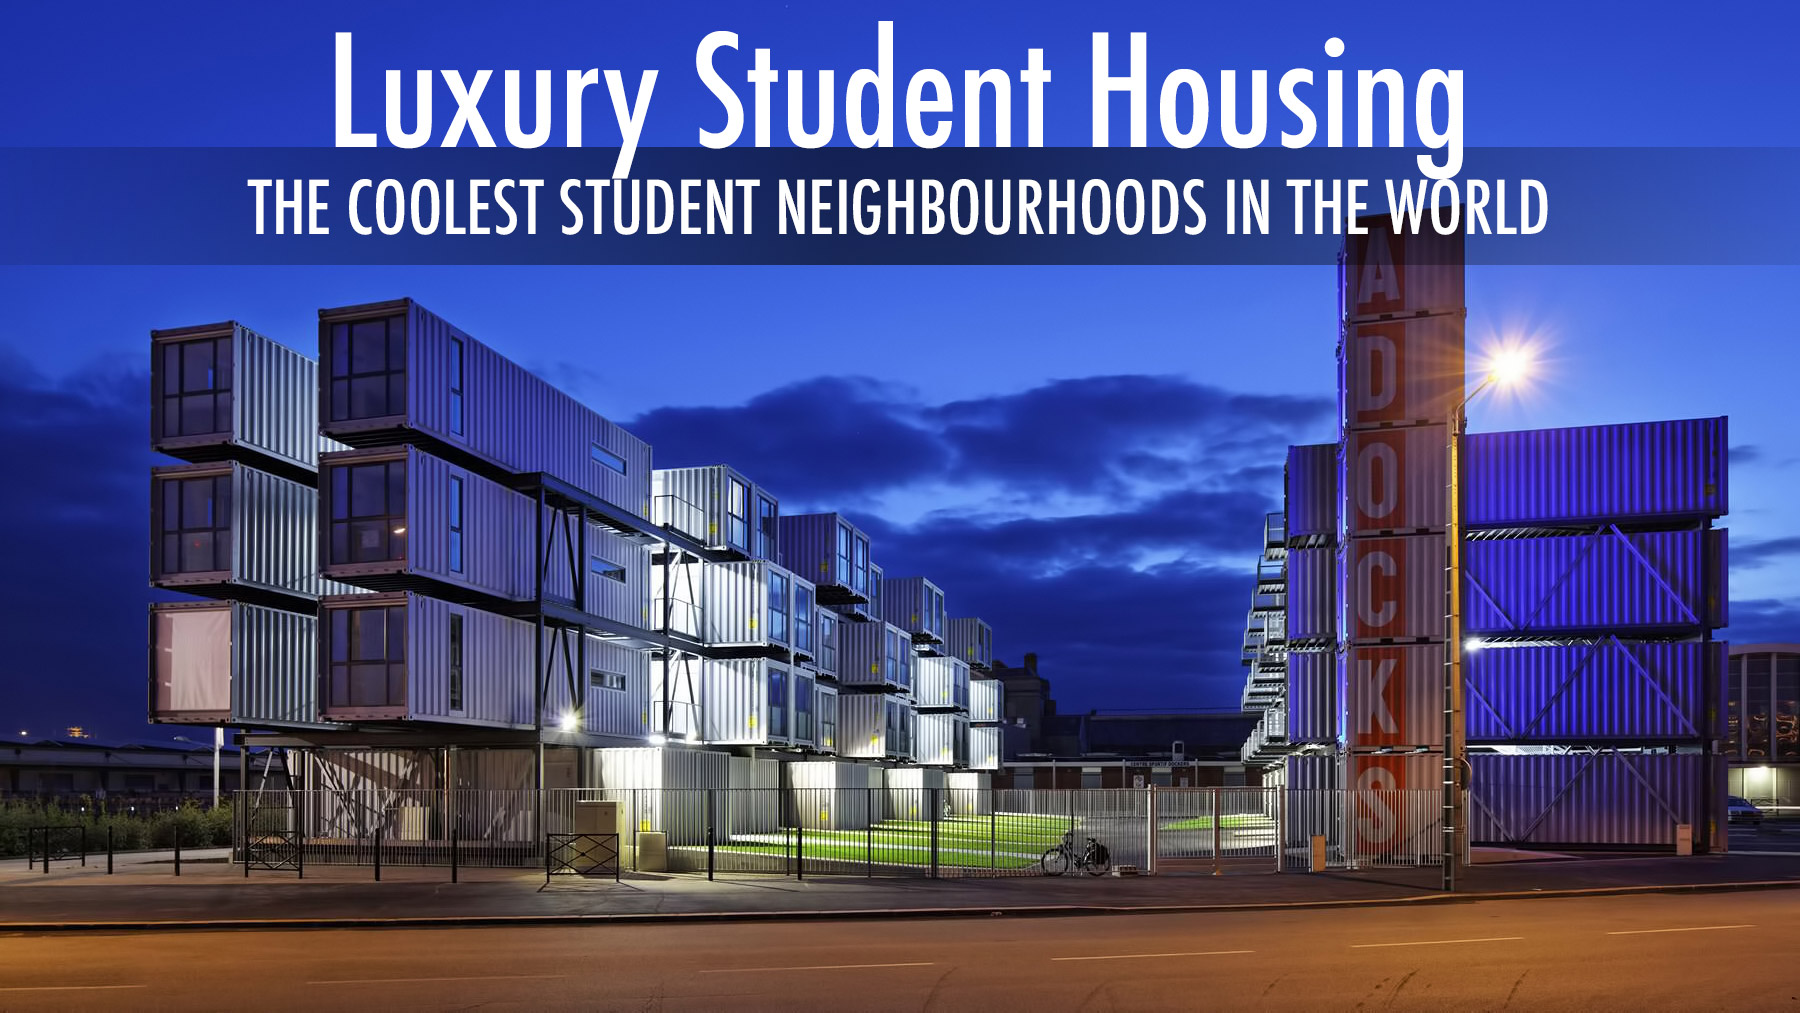 Luxury Student Housing - The Coolest Student Neighbourhoods in the World